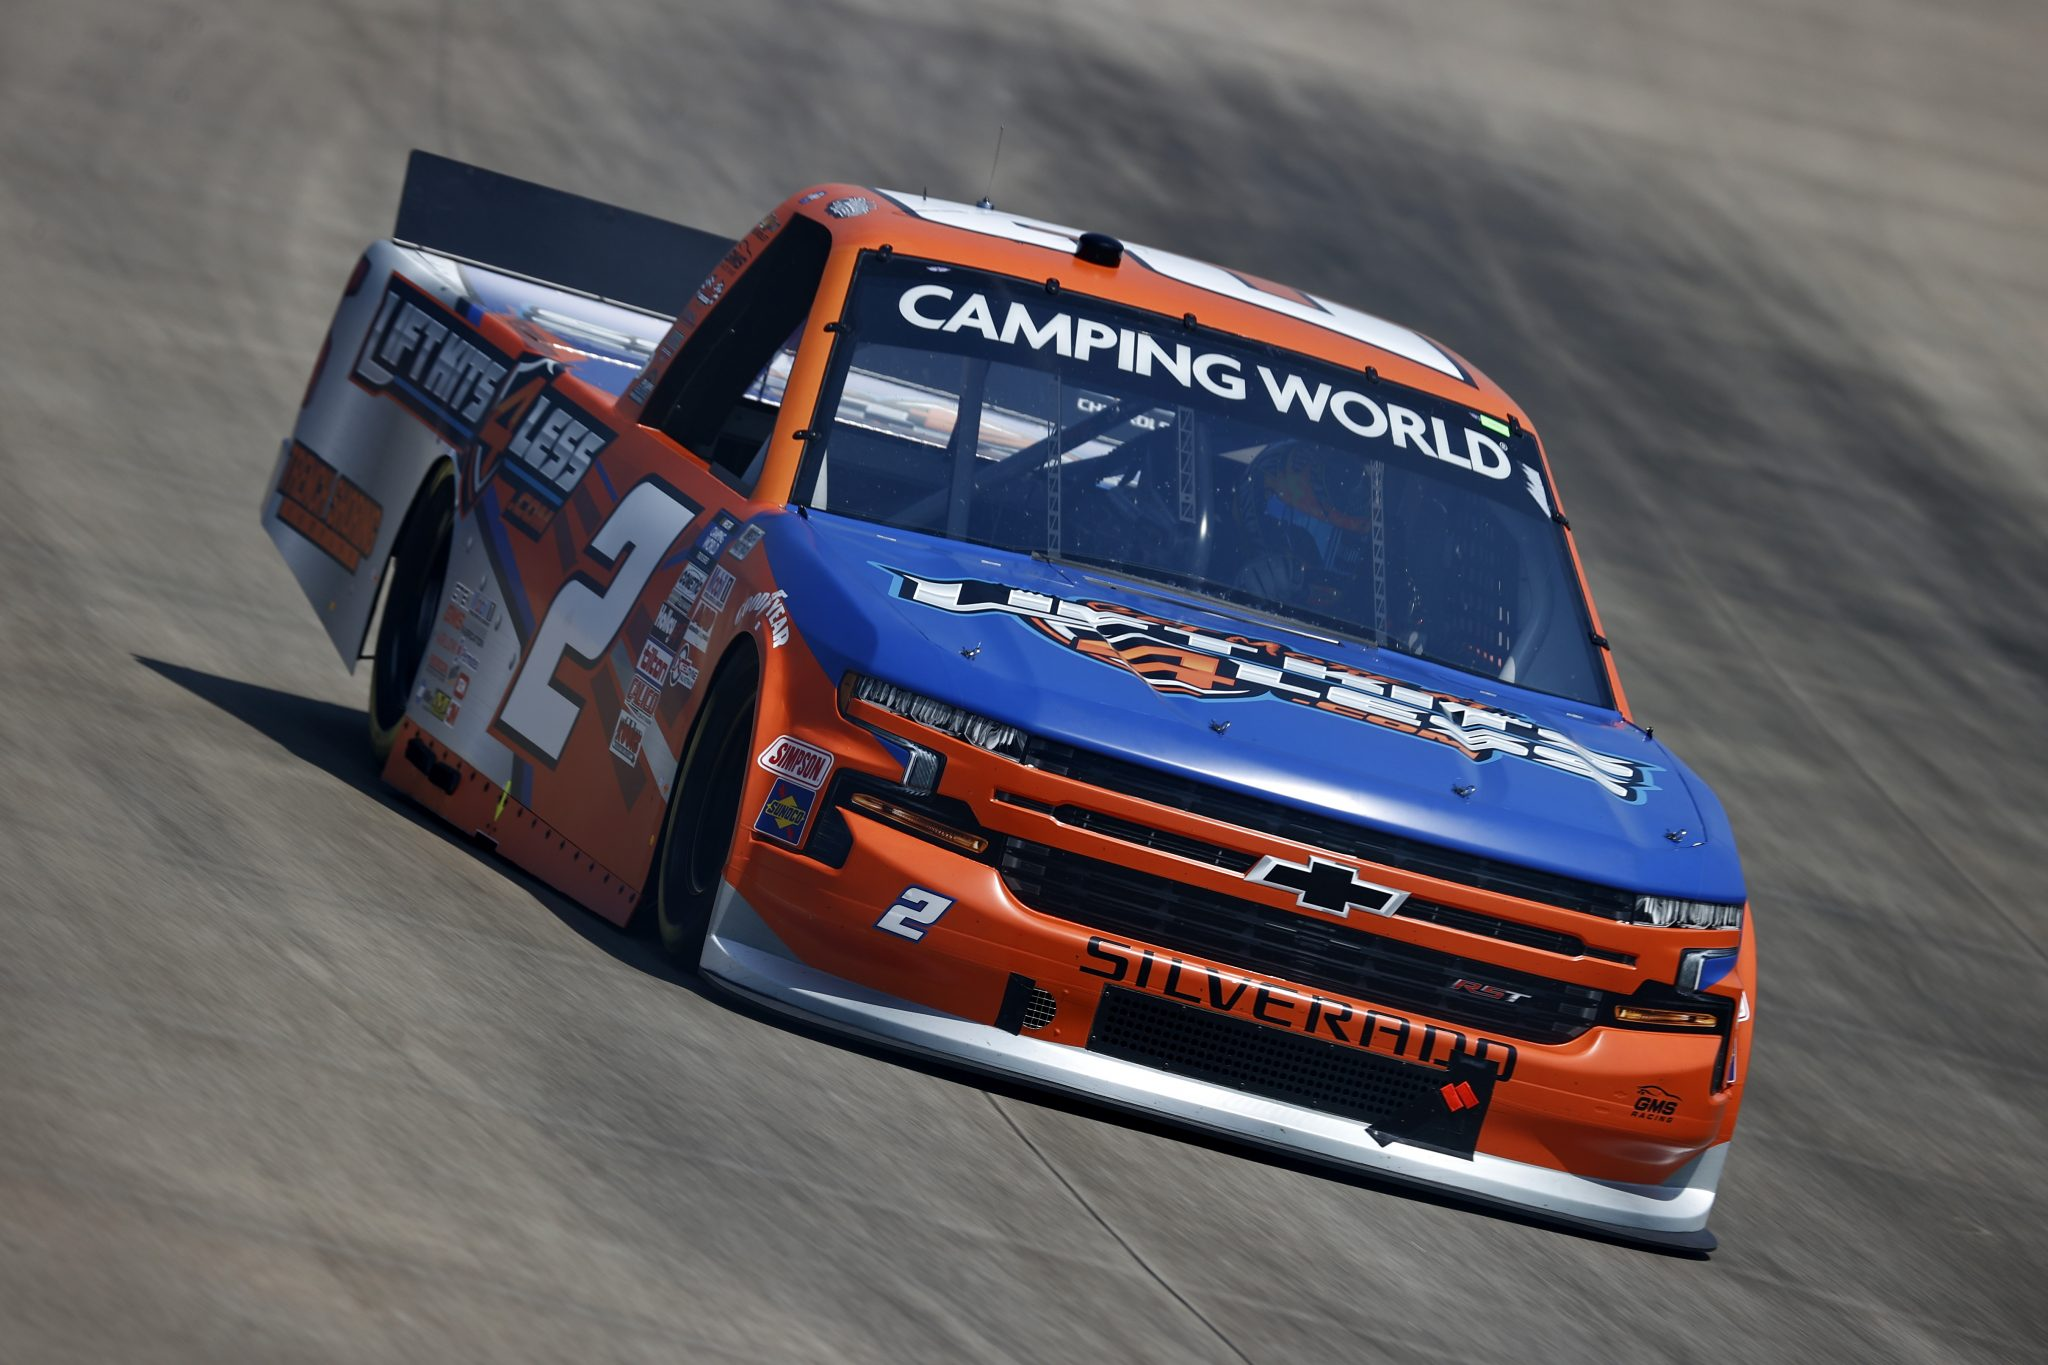 LEBANON, TENNESSEE - JUNE 18: Sheldon Creed, driver of the #2 Liftkits4less.com Chevrolet, drives during practice for the NASCAR Camping World Truck Series Rackley Roofing 200 at Nashville Superspeedway on June 18, 2021 in Lebanon, Tennessee. (Photo by Jared C. Tilton/Getty Images) | Getty Images